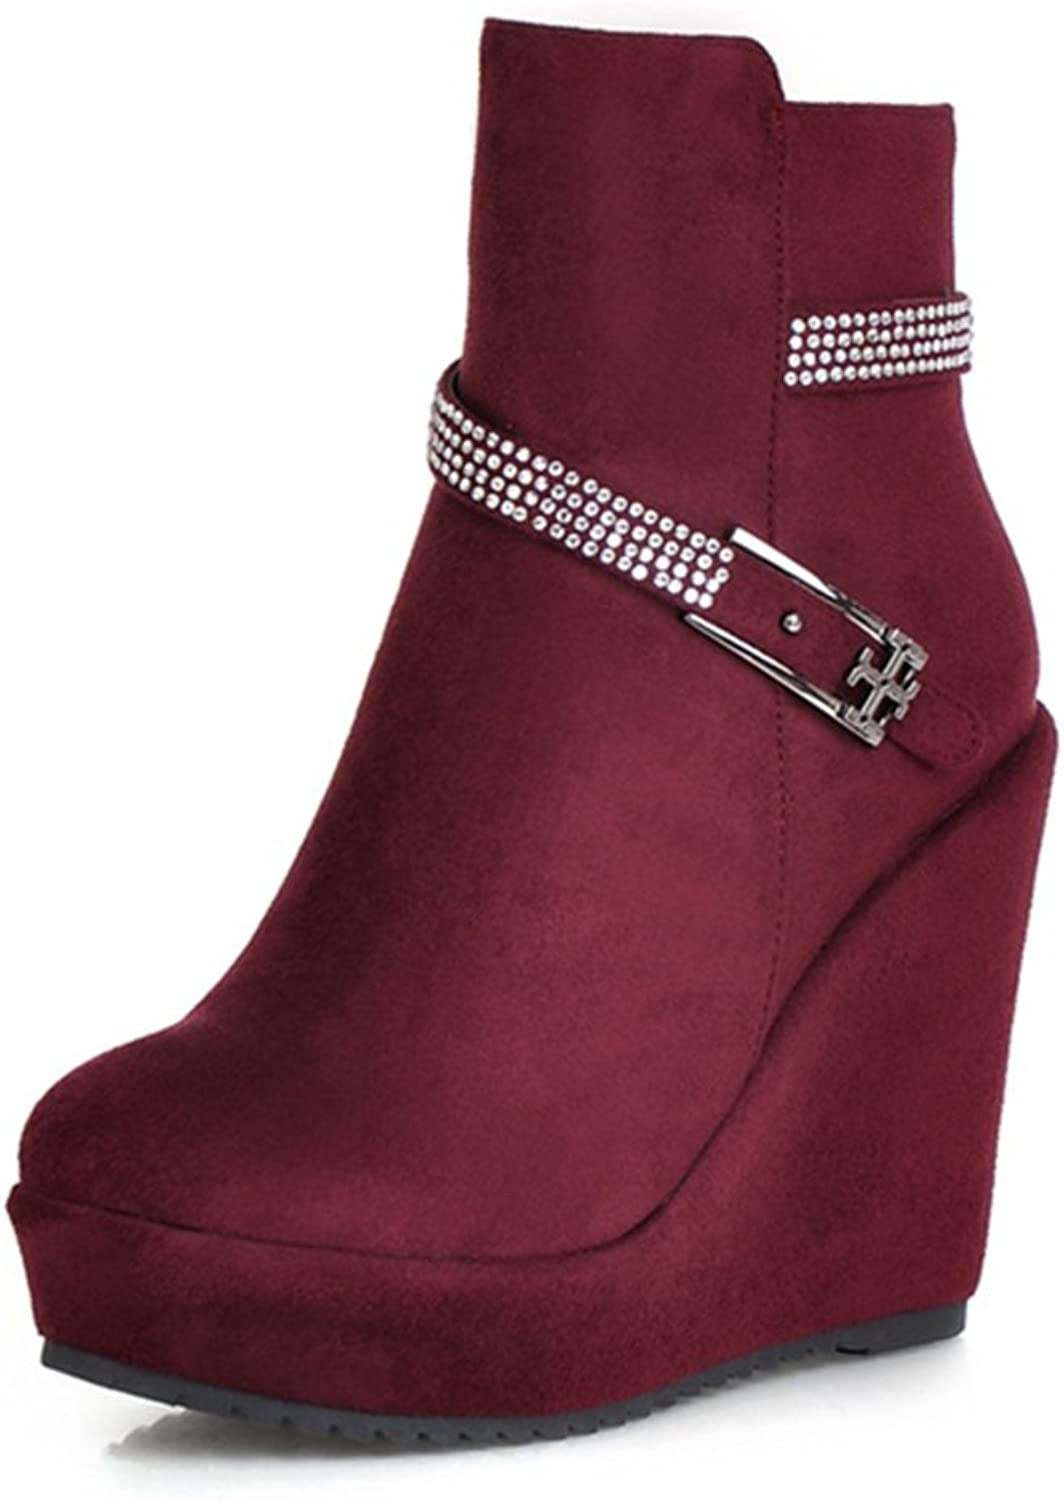 RHFDVGDS autumn winter fashion boots With super high with Rhinestone side zipper Western boots